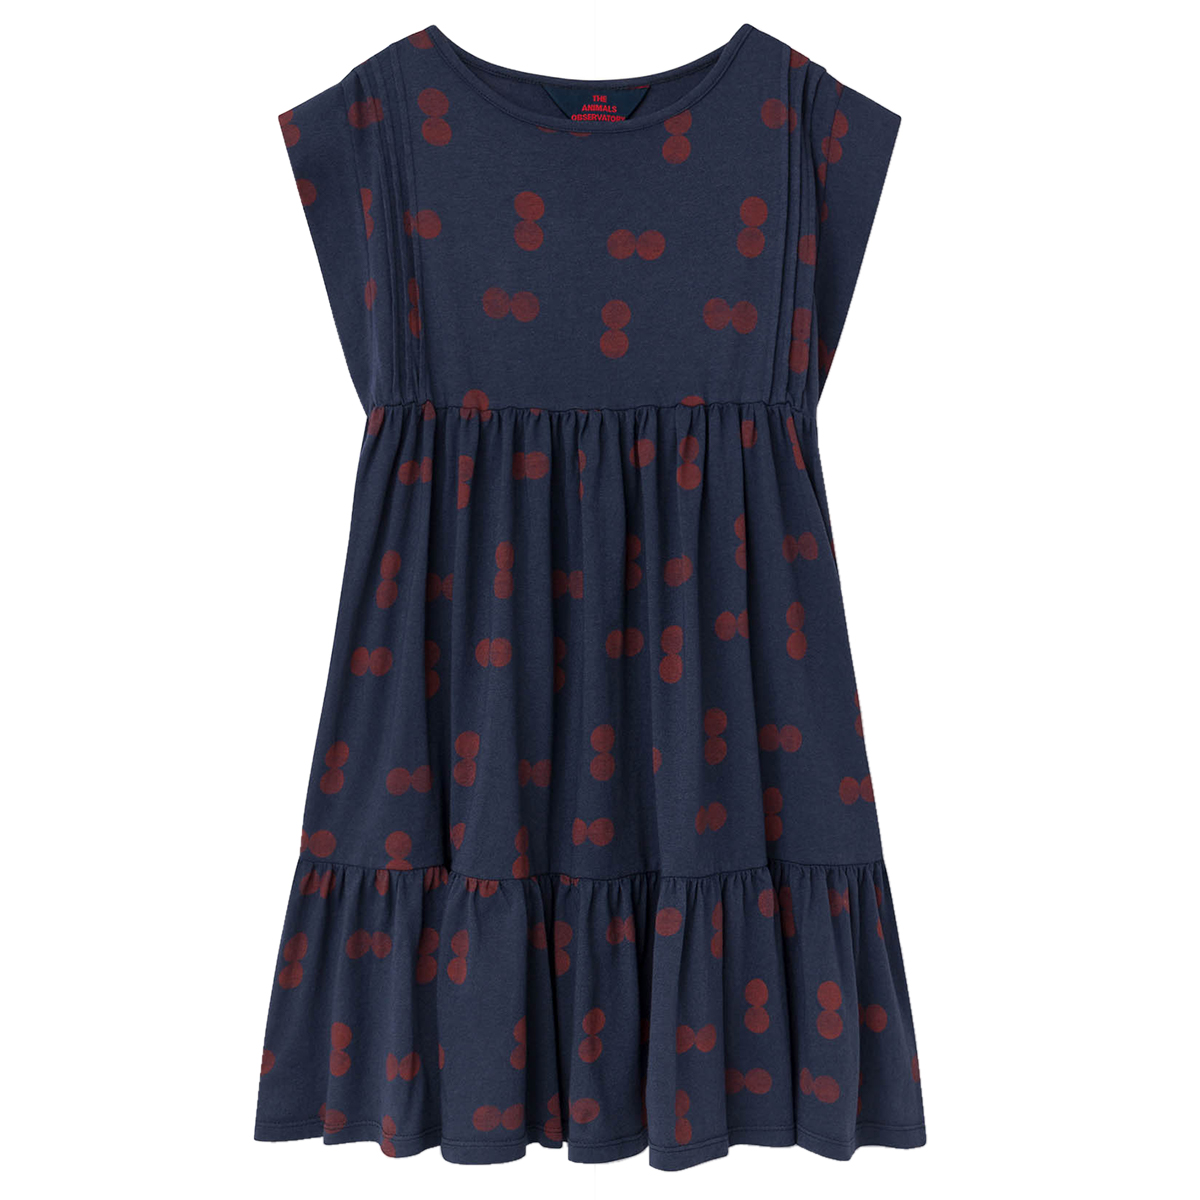 The Animals Observatory Cherries Robin Dress in Navy